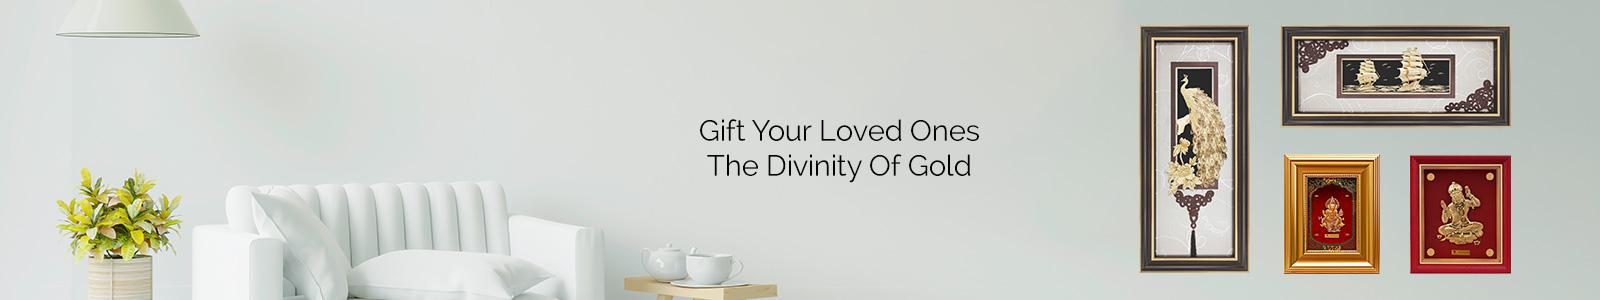 Gift Your Loved Ones The Divinity Of Gold